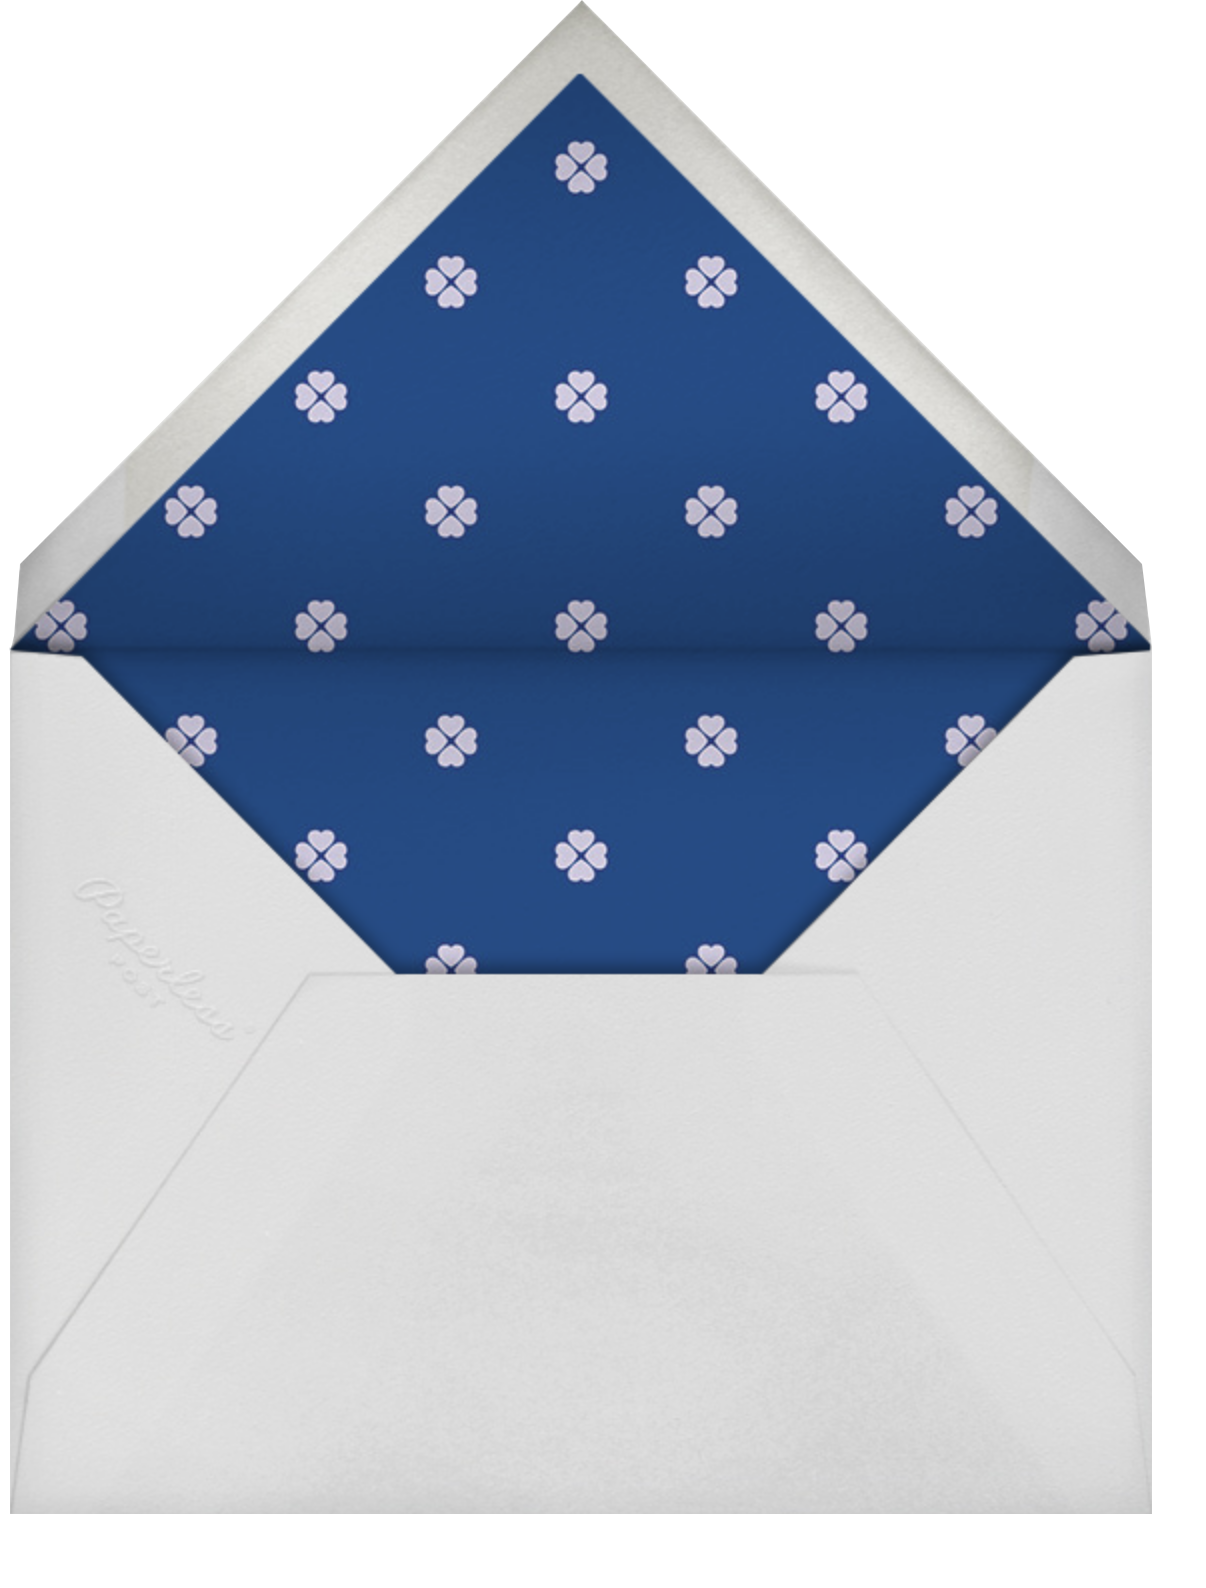 Colorblocked Border - Navy/Lilac - kate spade new york - Adult birthday - envelope back